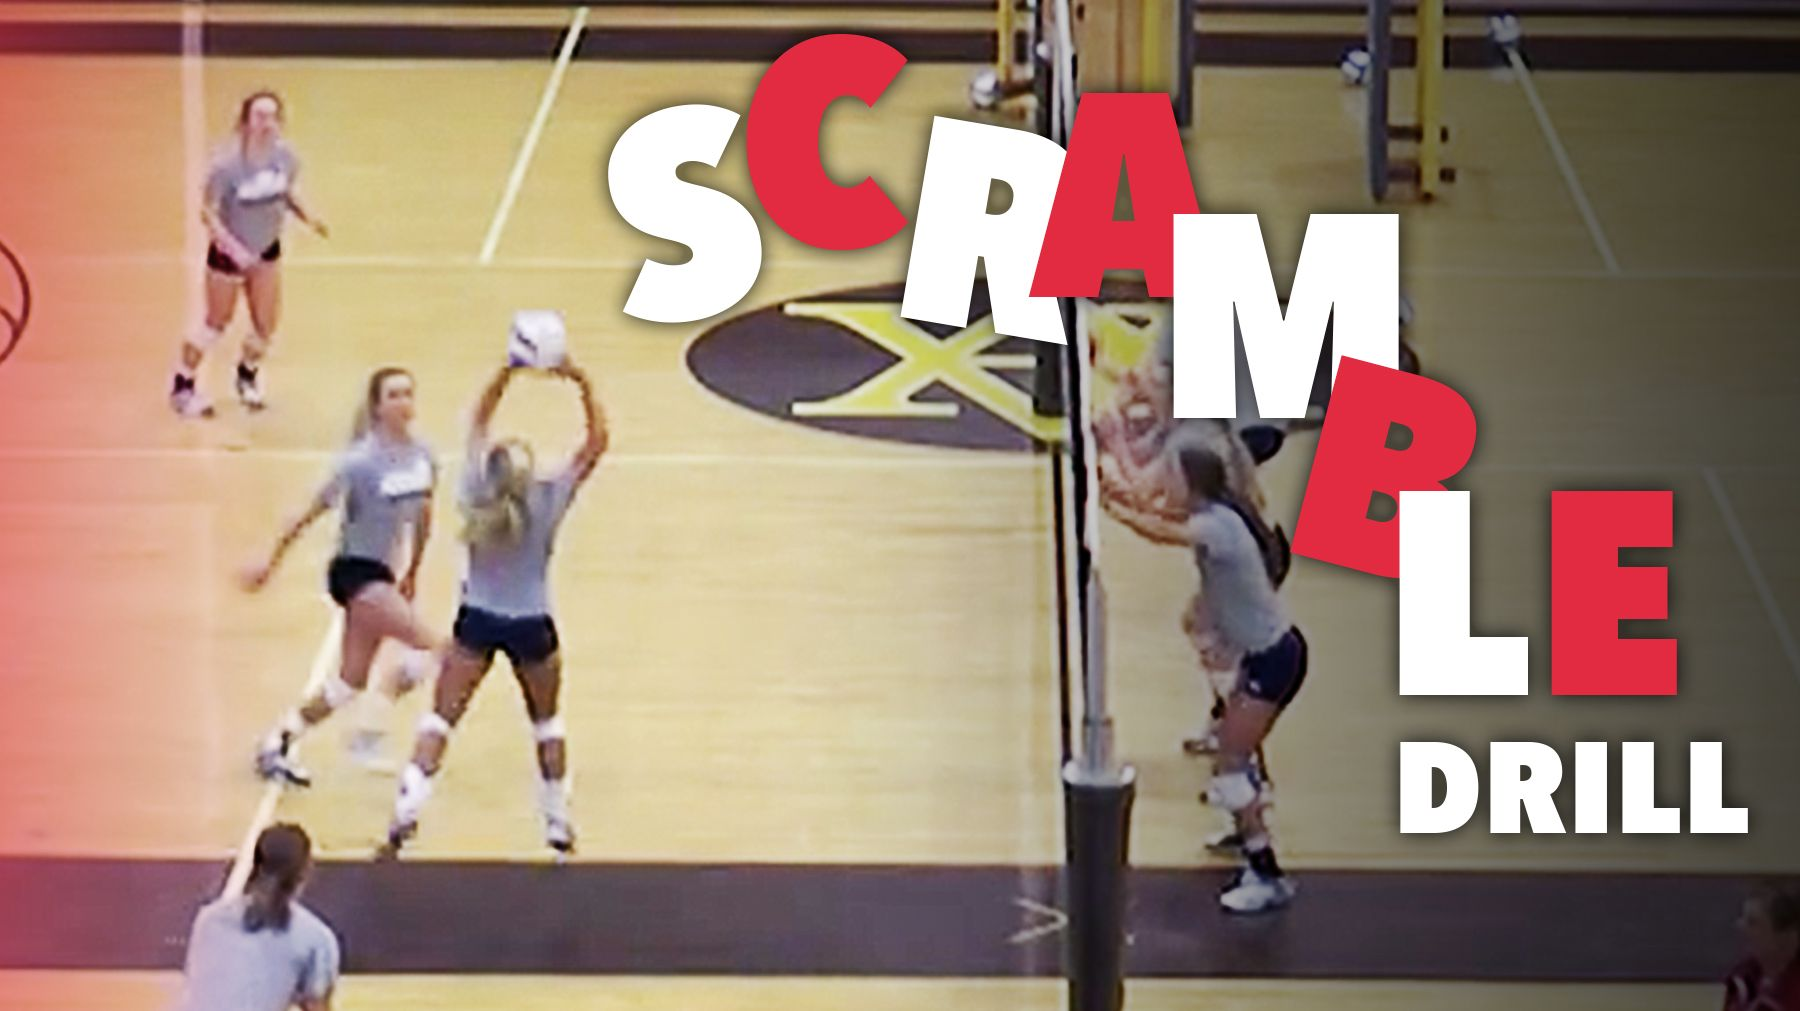 Scramble Drill The Art Of Coaching Volleyball Coaching Volleyball Volleyball Practice Volleyball Training